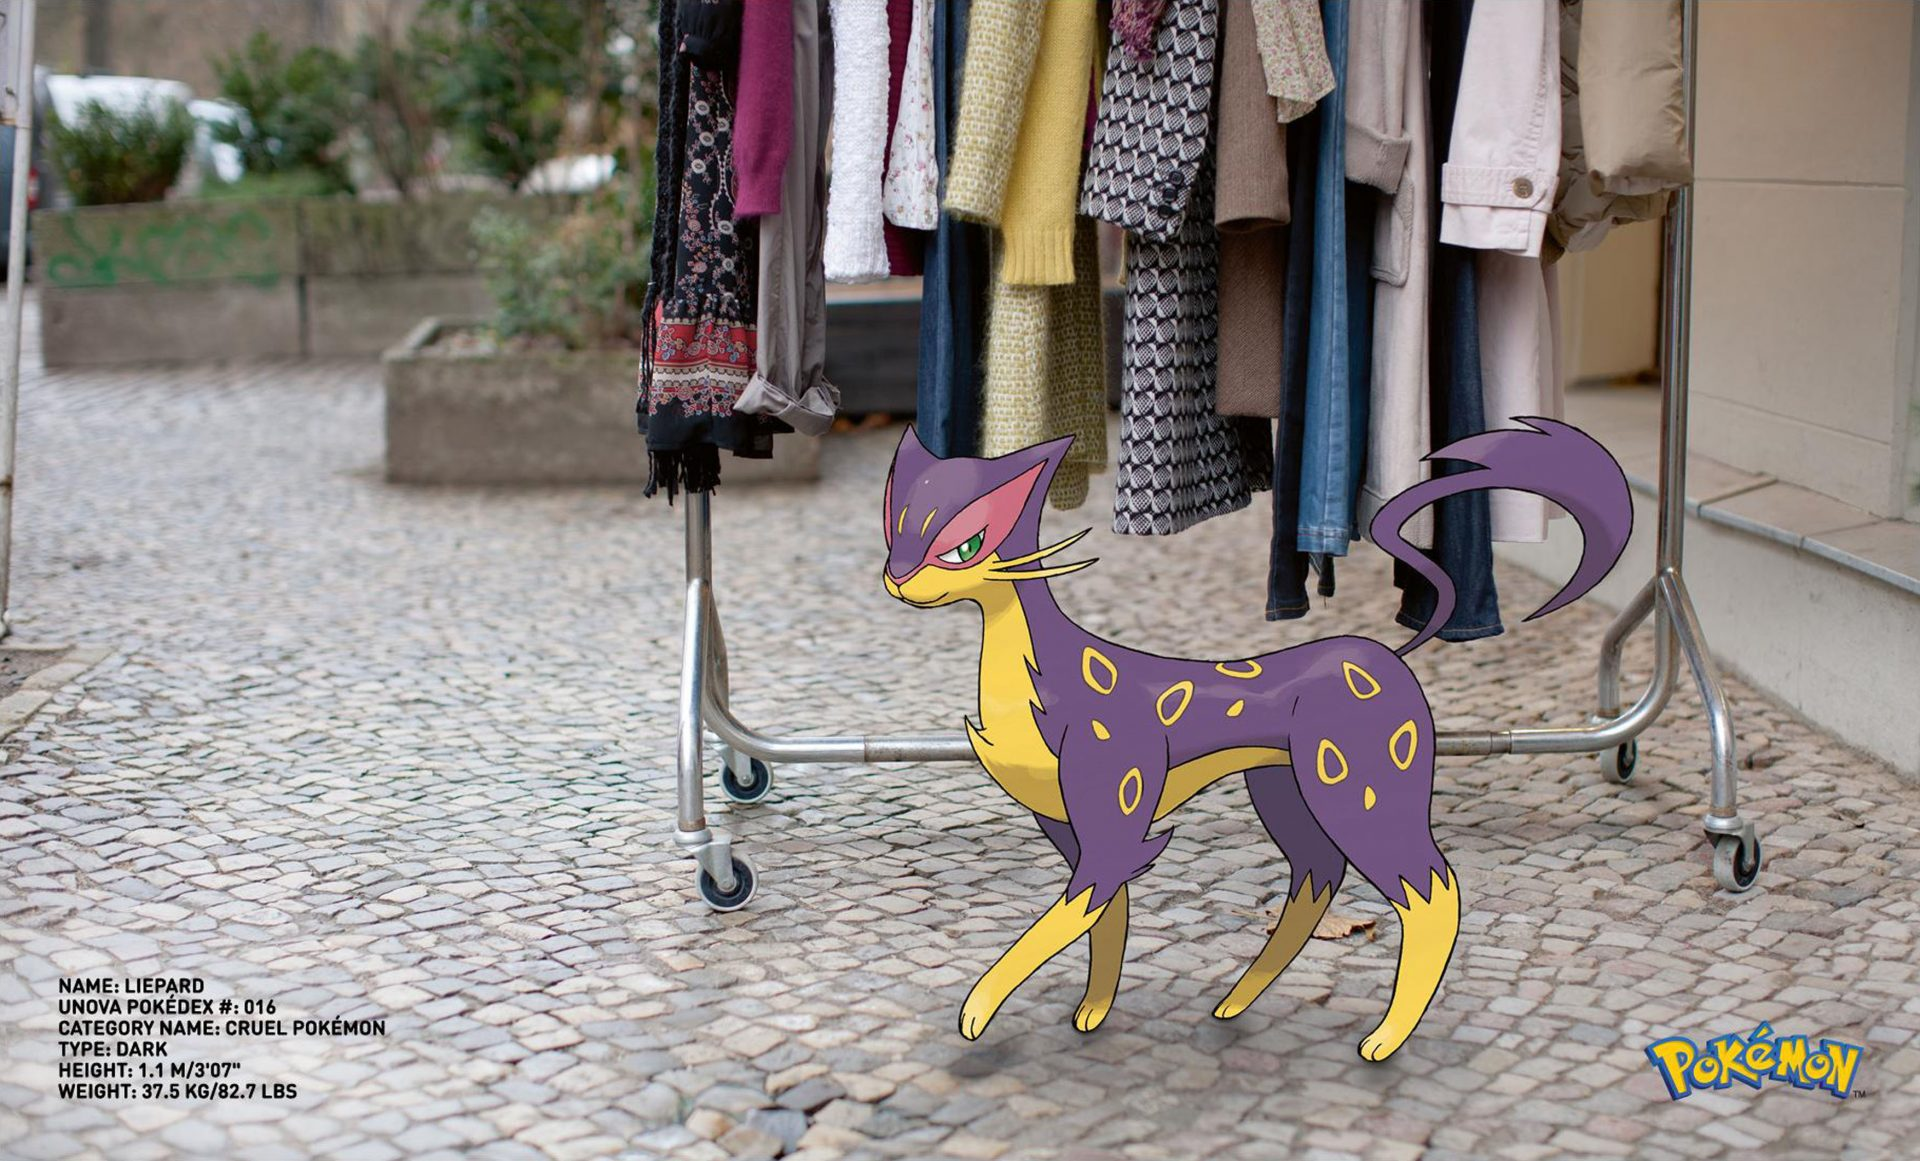 Pokemon Go Liepard cat by clothes rail Cruel Pokemon Dentsu London – Shaw and Shaw advertising photography photographer photographers